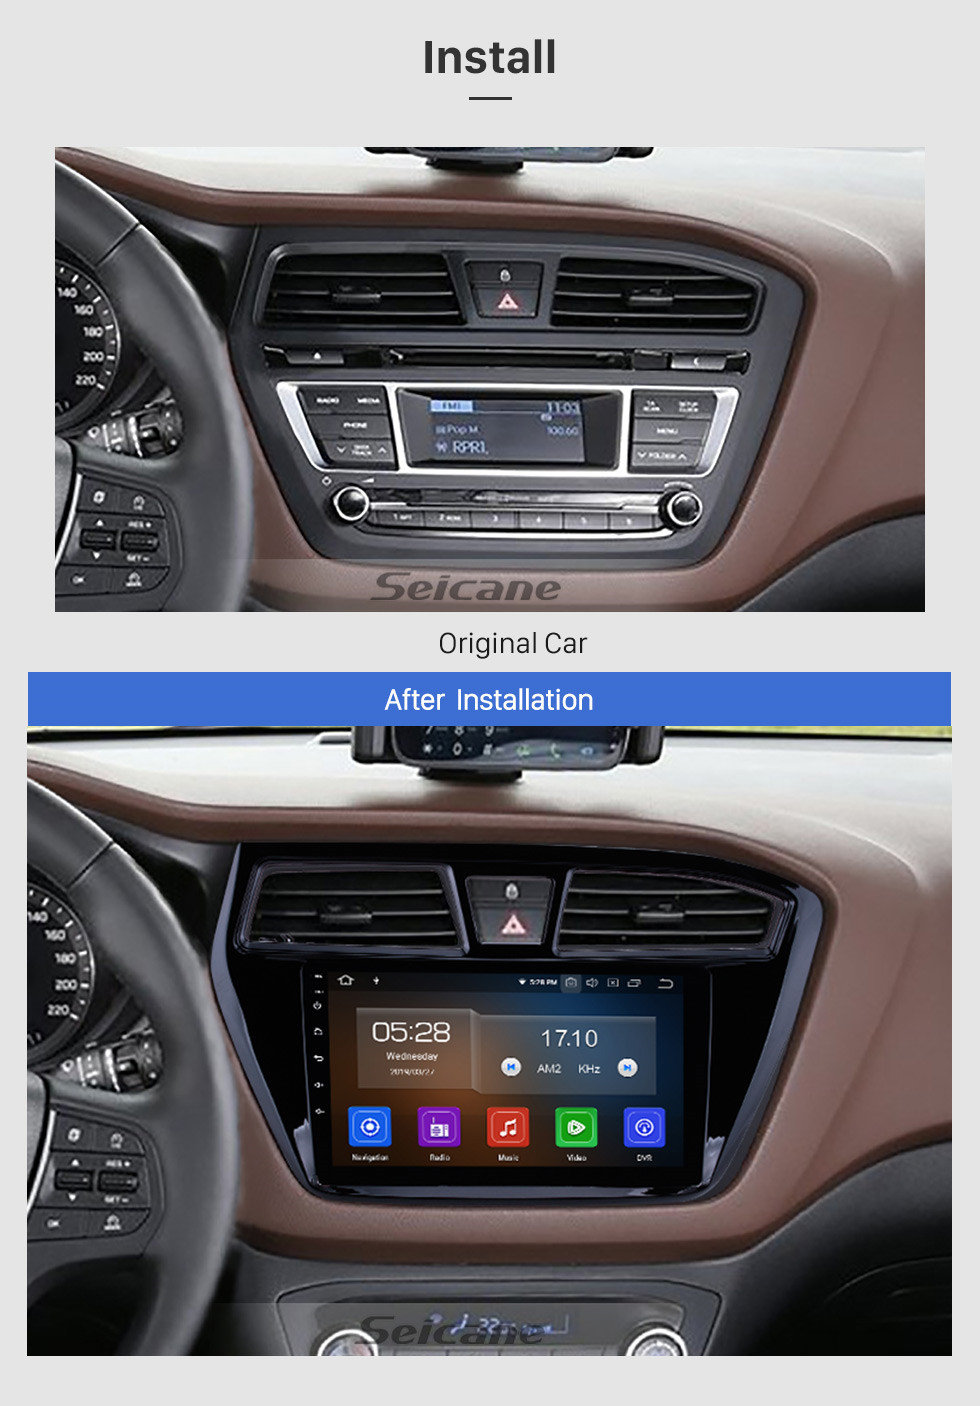 Seicane Aftermarket Android 9.0 navigation system Radio for 2014 2015 Hyundai i20 with Mirror link GPS HD 1024*600 touch screen OBD2 DVR Rearview camera TV 1080P Video 3G WIFI Steering Wheel Control Bluetooth USB SD